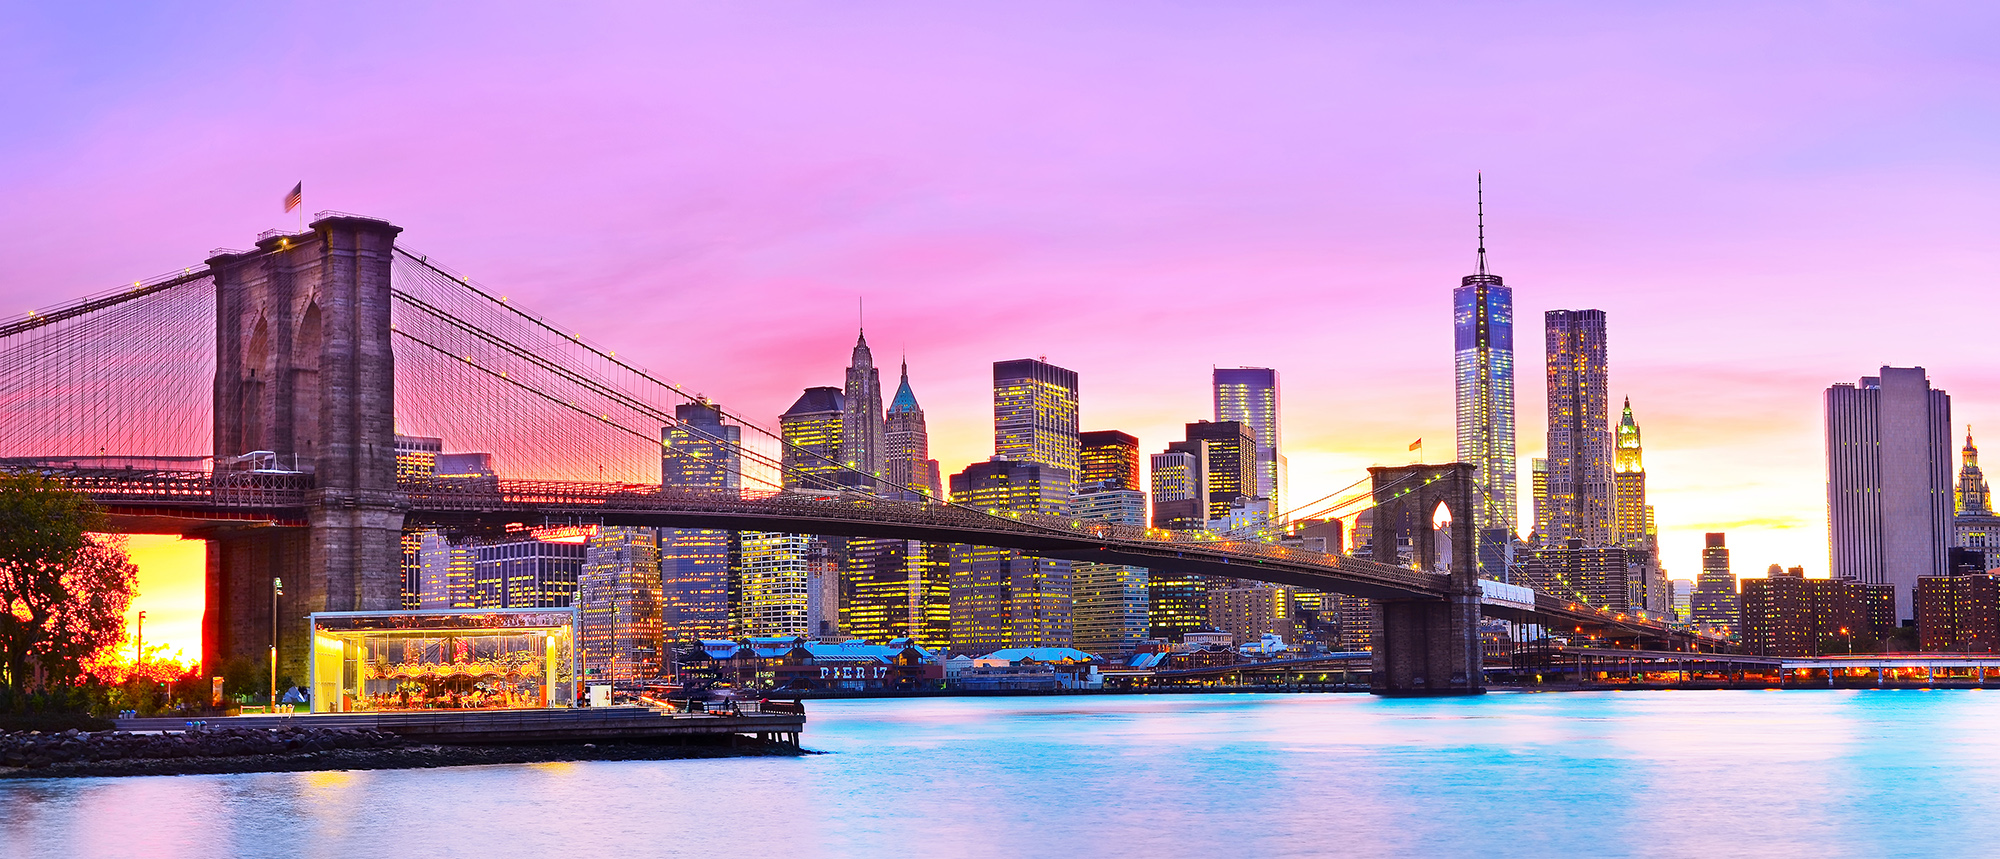 sunset with the Brooklyn bridge and NYC skyline in the background